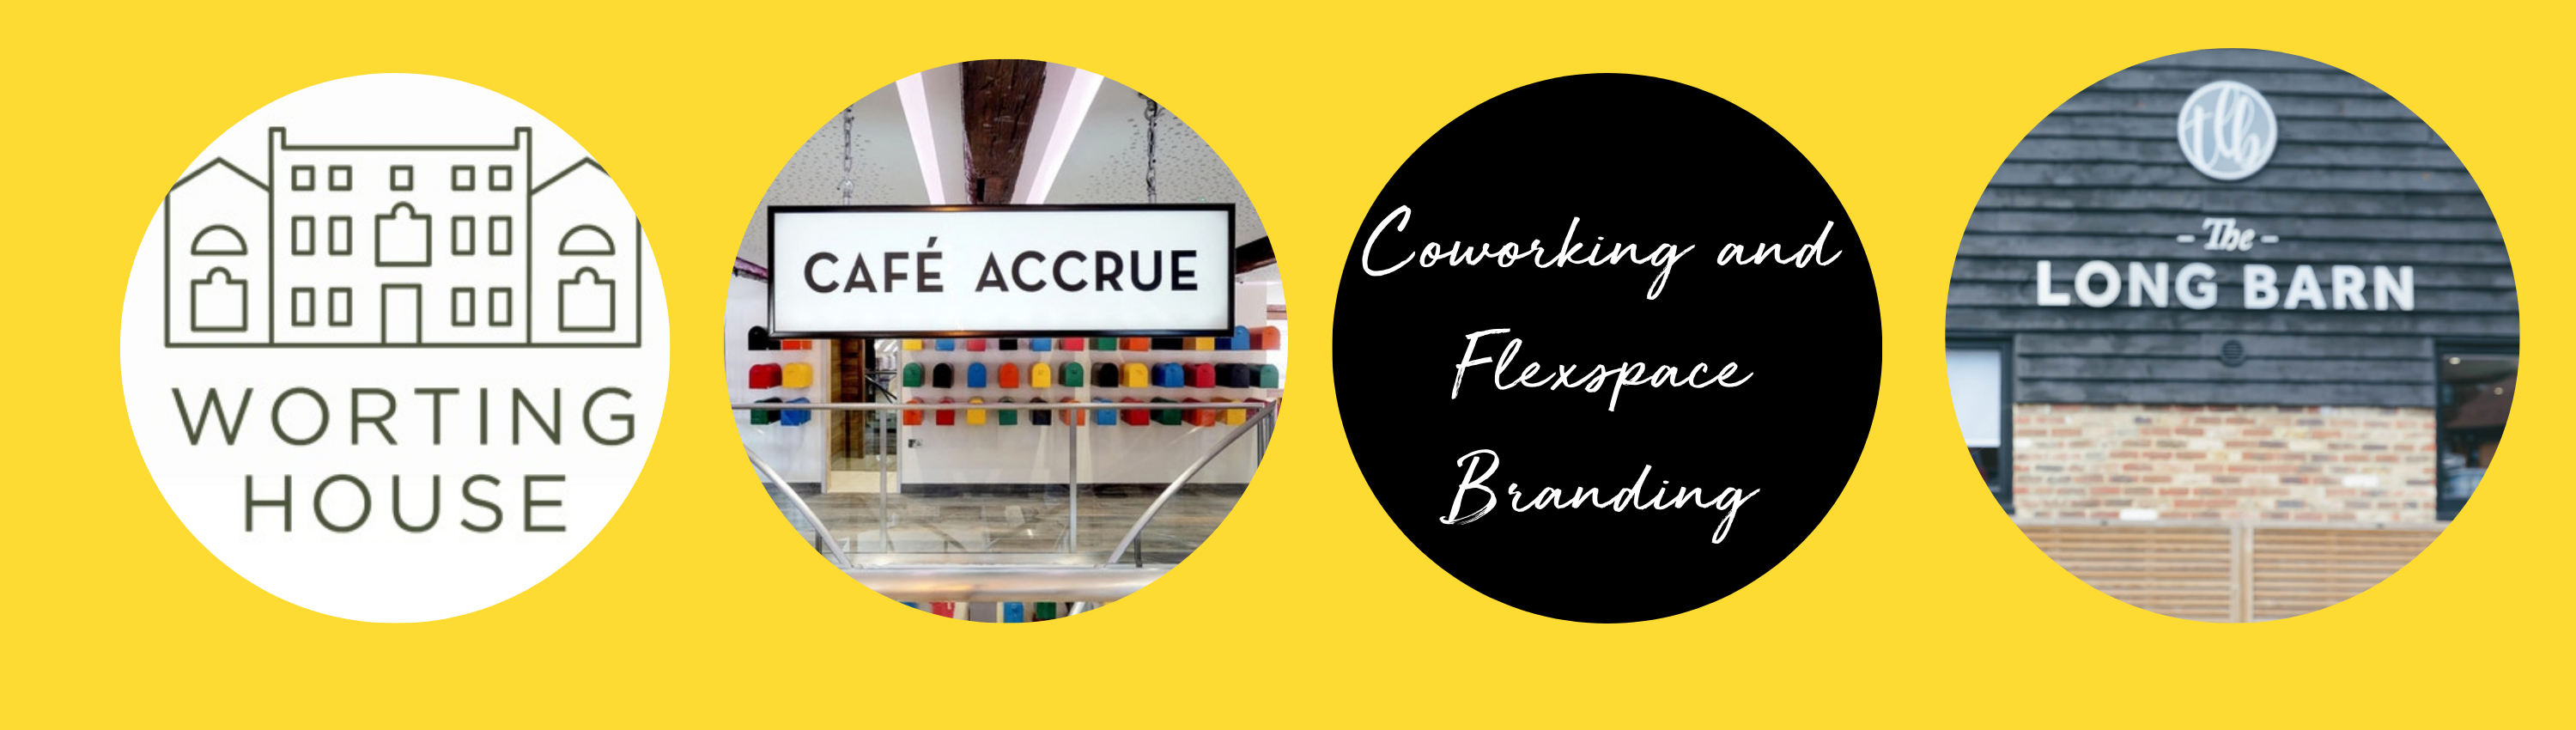 Coworking and Flexspace Branding